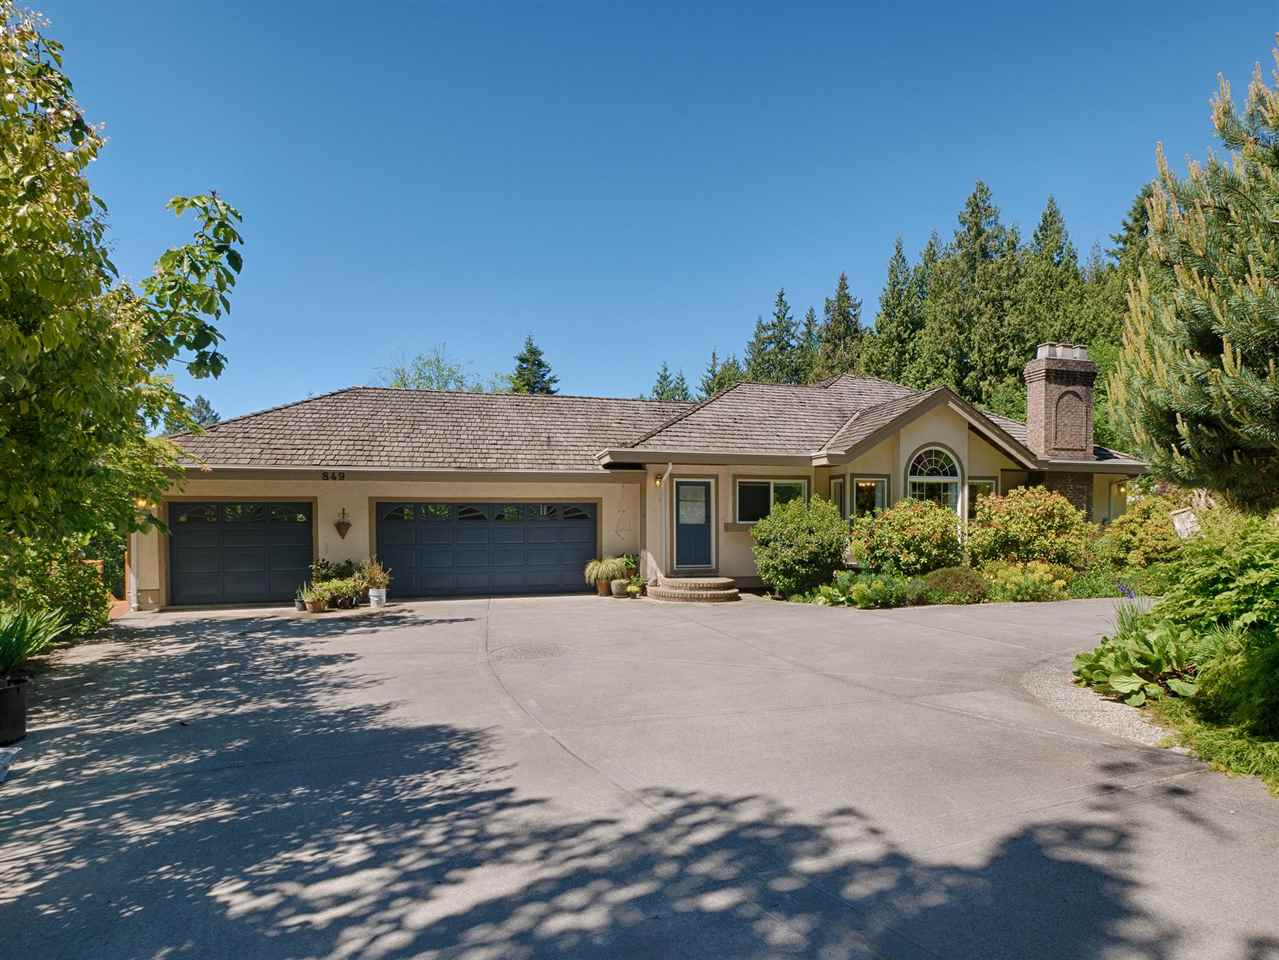 Fabulous 6000 sq ft. house perched high on a gorgeous estate-like property located a short drive from the Vancouver ferry. Enjoy entertaining friends and family from your exquisitely well built, ultra-spacious level entry home. Plenty of light from the large windows looking out over your 2.47 acre expanse of land & gardens, a spring-fed pond, and view of the ocean and Vancouver Island. Features include a 3 bay garage, second detached and plumbed garage/workshop with 12' ceilings, greenhouse, 400 amp service and much more. Surrounded by trees for complete privacy. Meticulously maintained, the property is zoned for 2 full size homes and subdividable if you choose.  See a live walk-through video by clicking on the Virtual Tour. Live the dream!